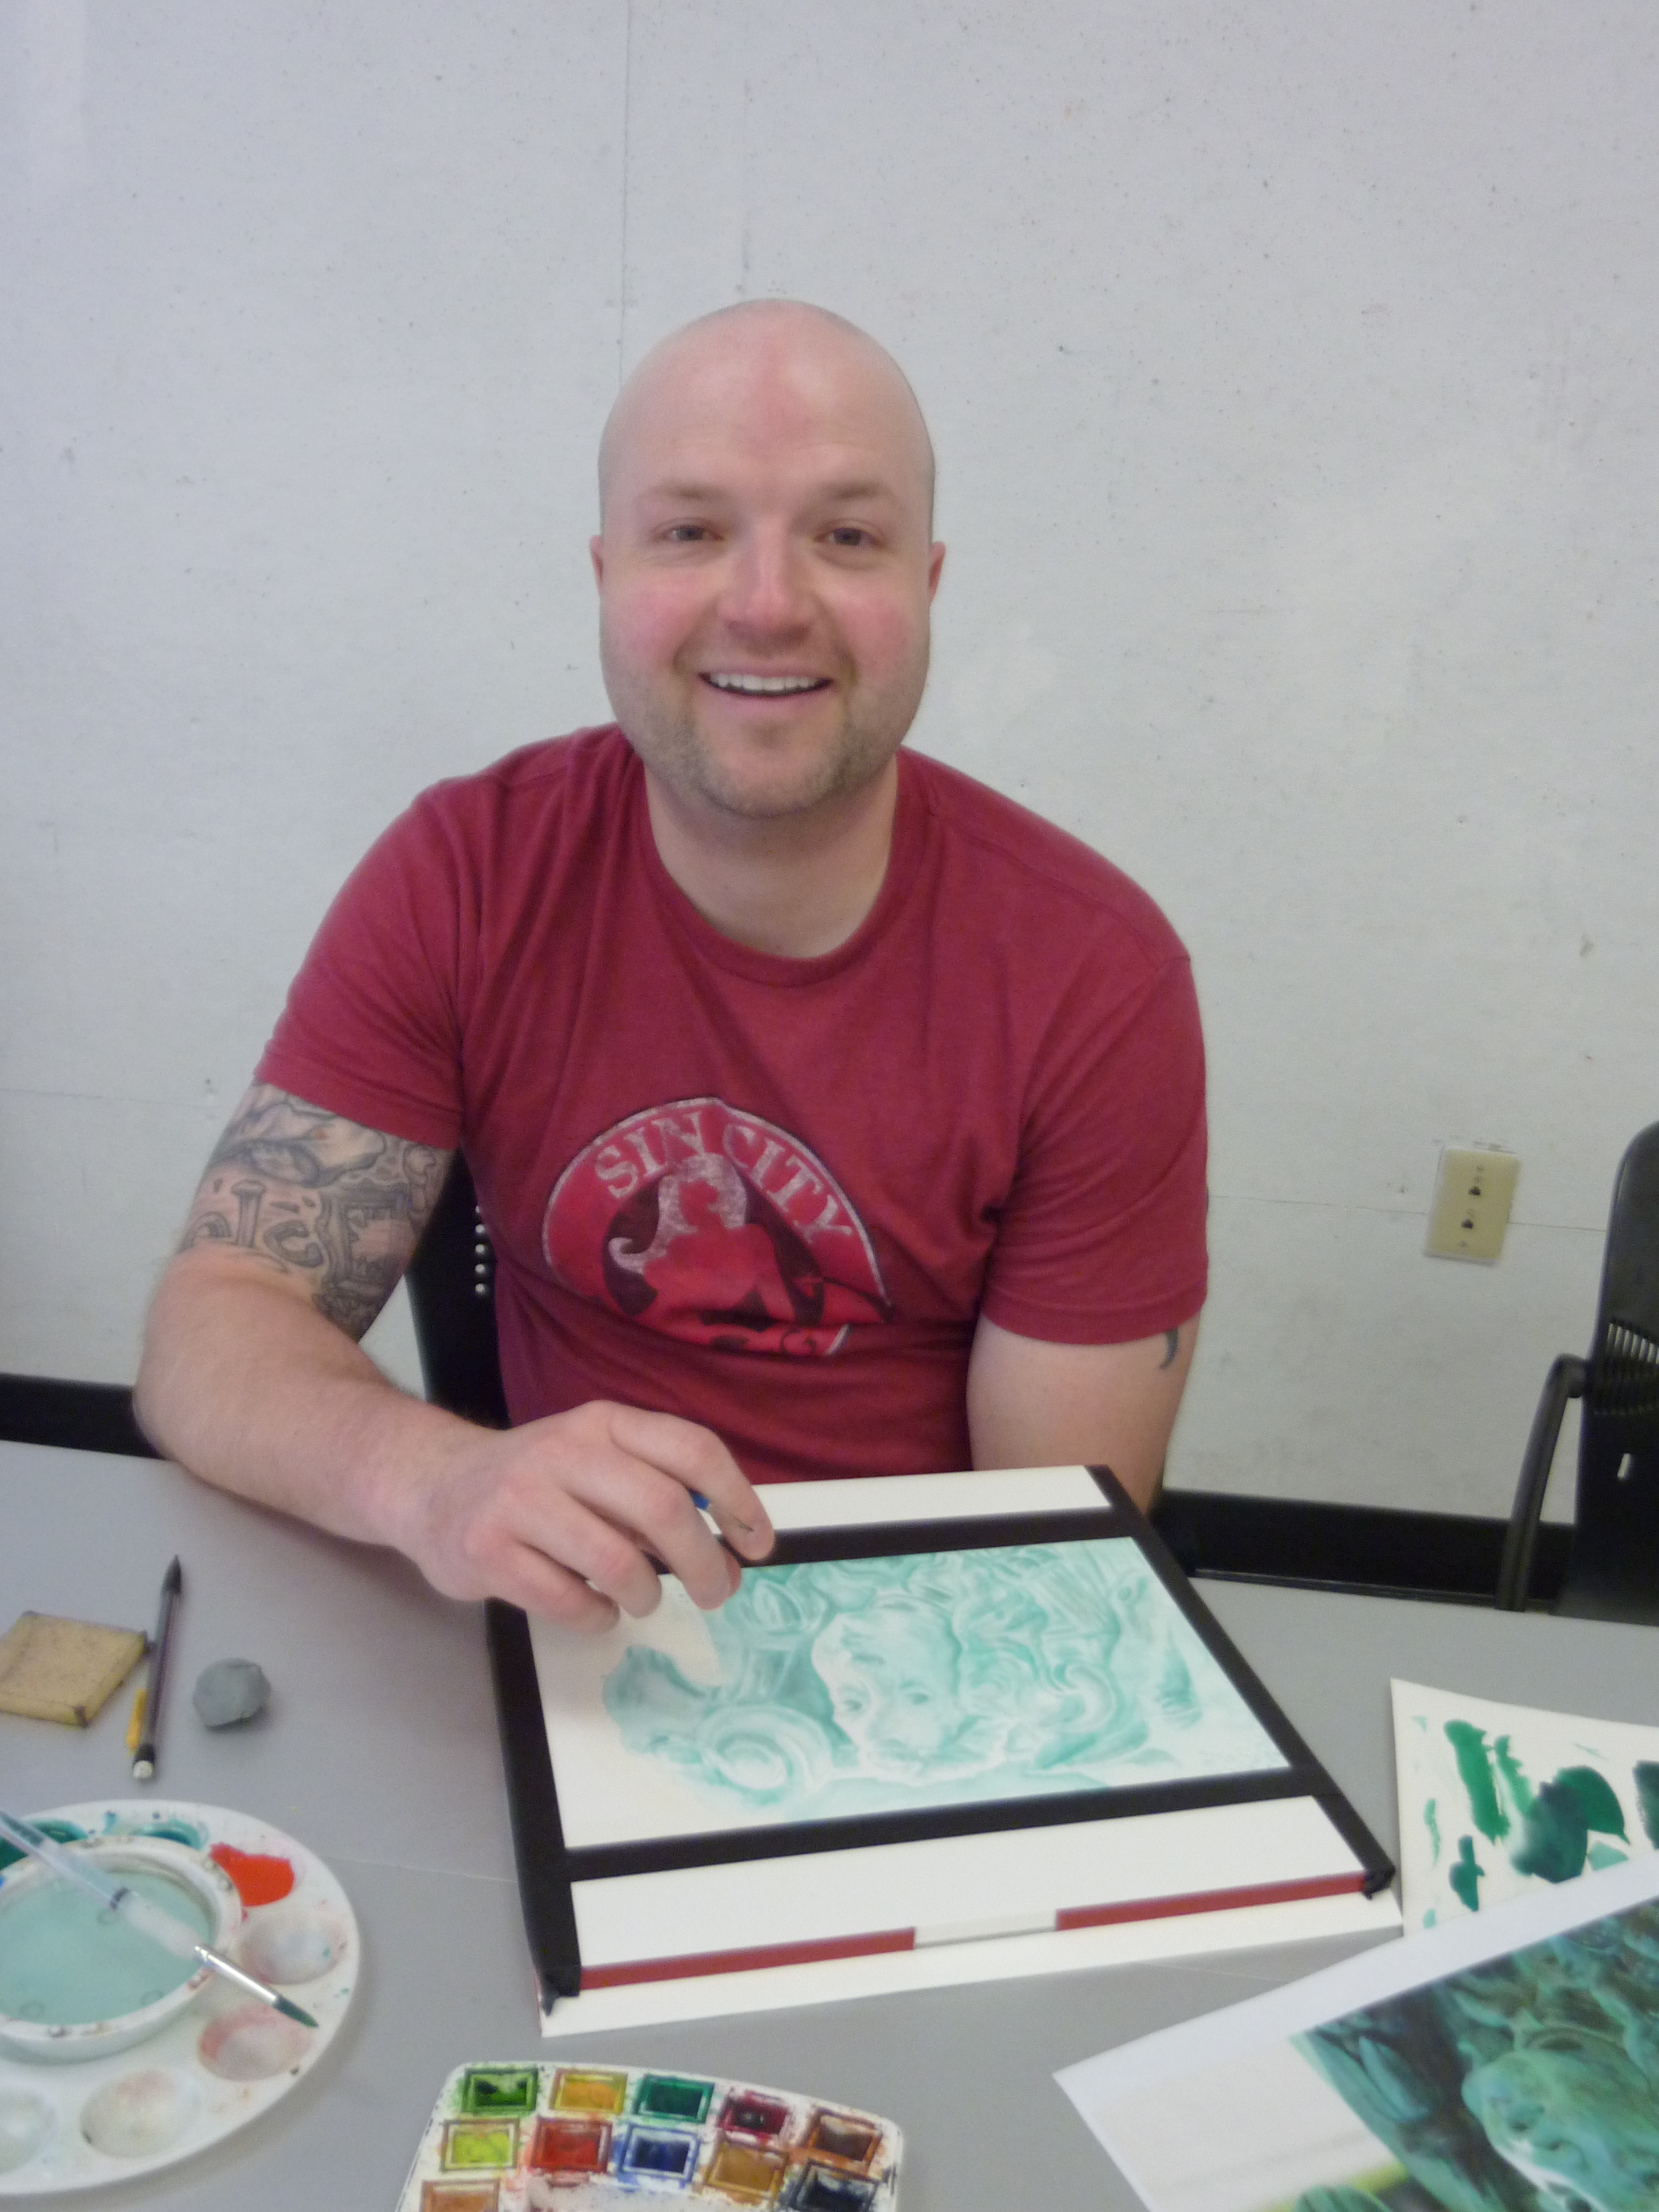 David is a children's book illustration certificate student. He worked on a monochromatic piece where he built up layers of color.